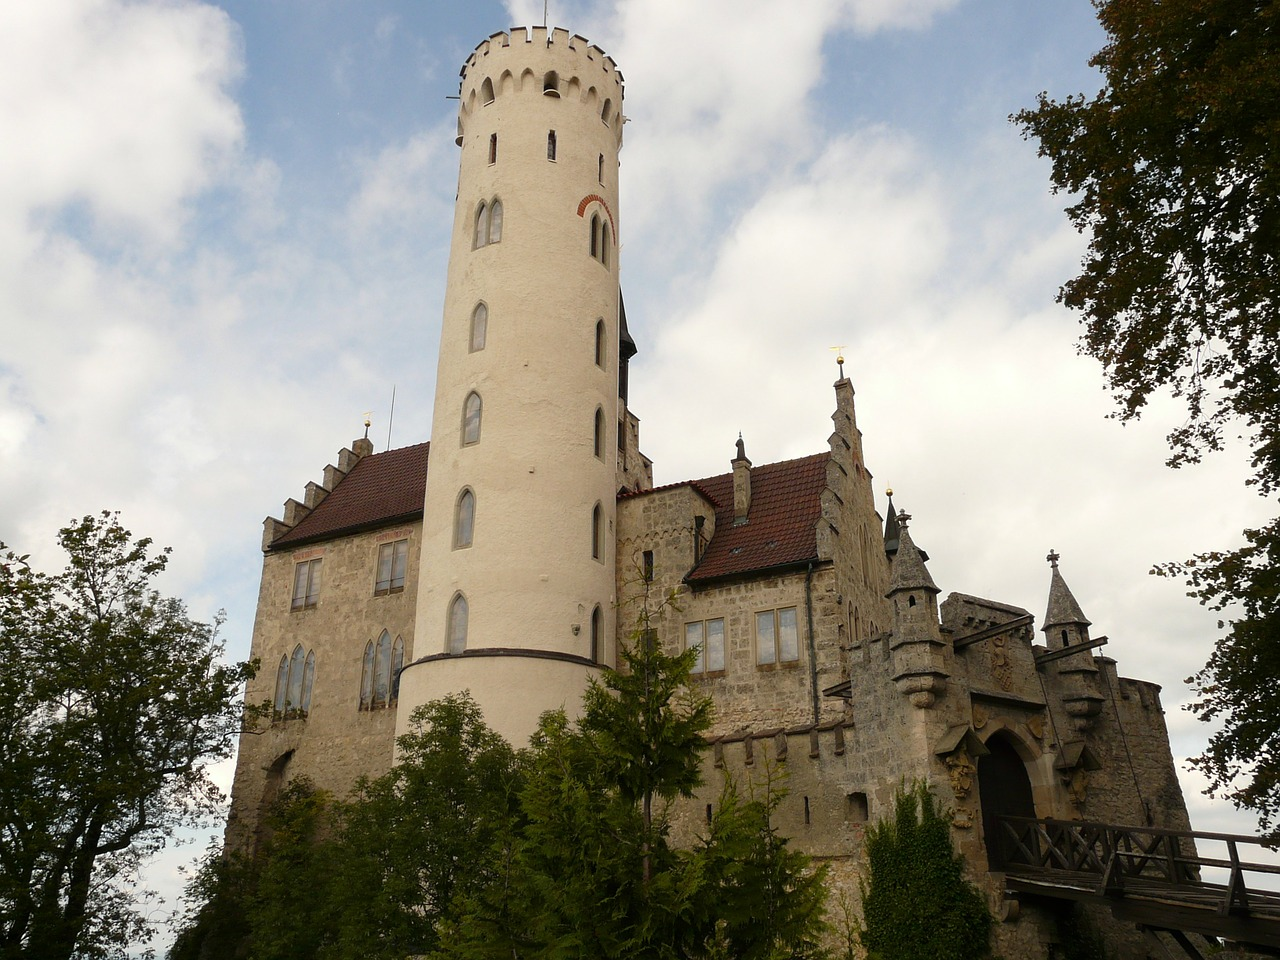 lichtenstein castle knight's castle free photo